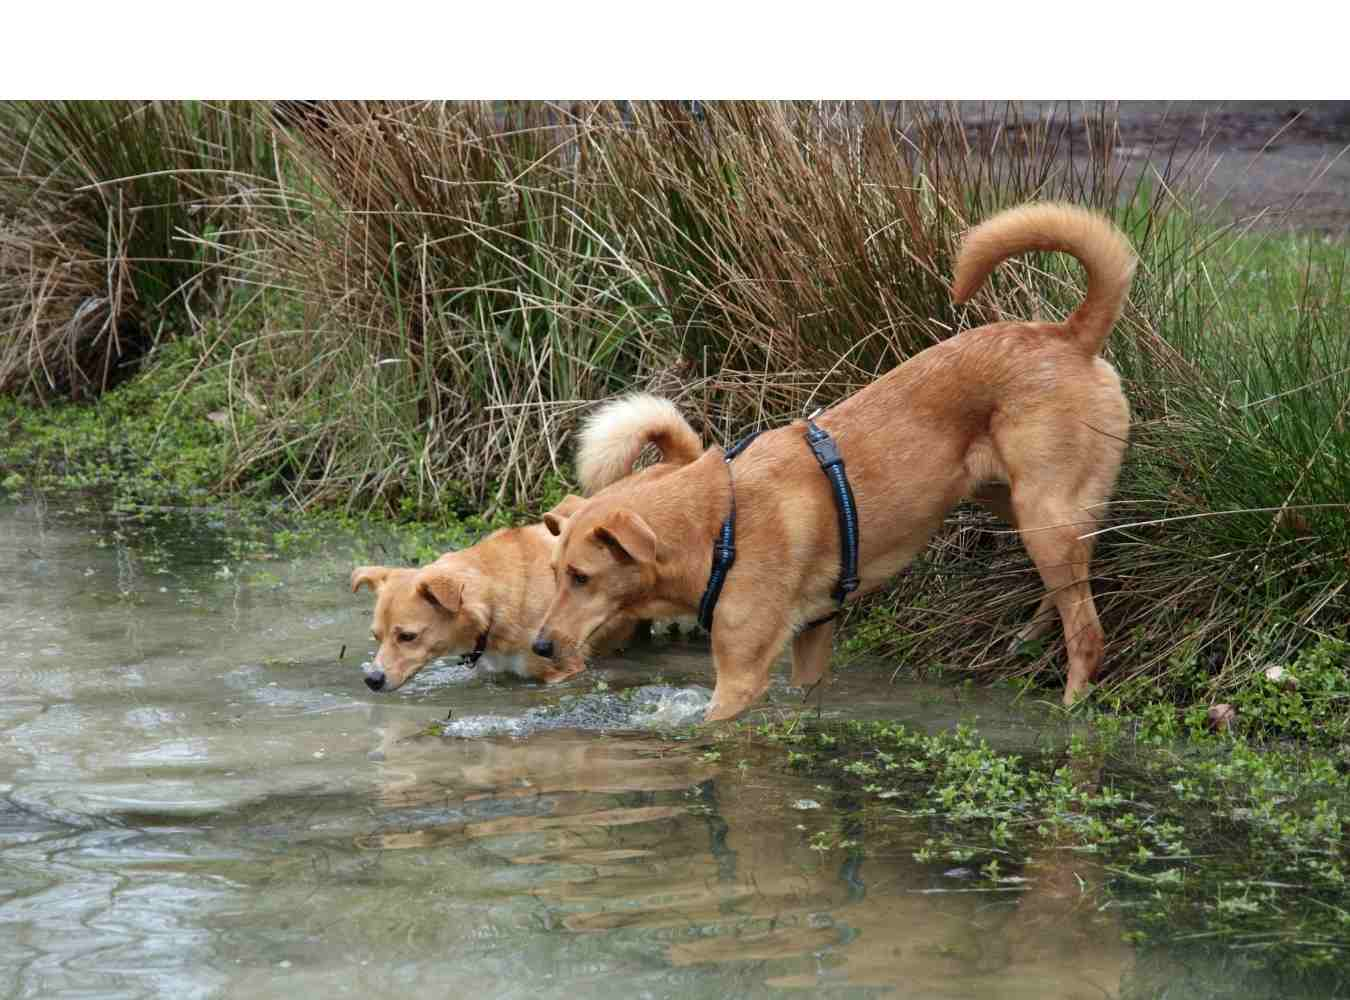 dogs drinking from pond that may have giardia in it